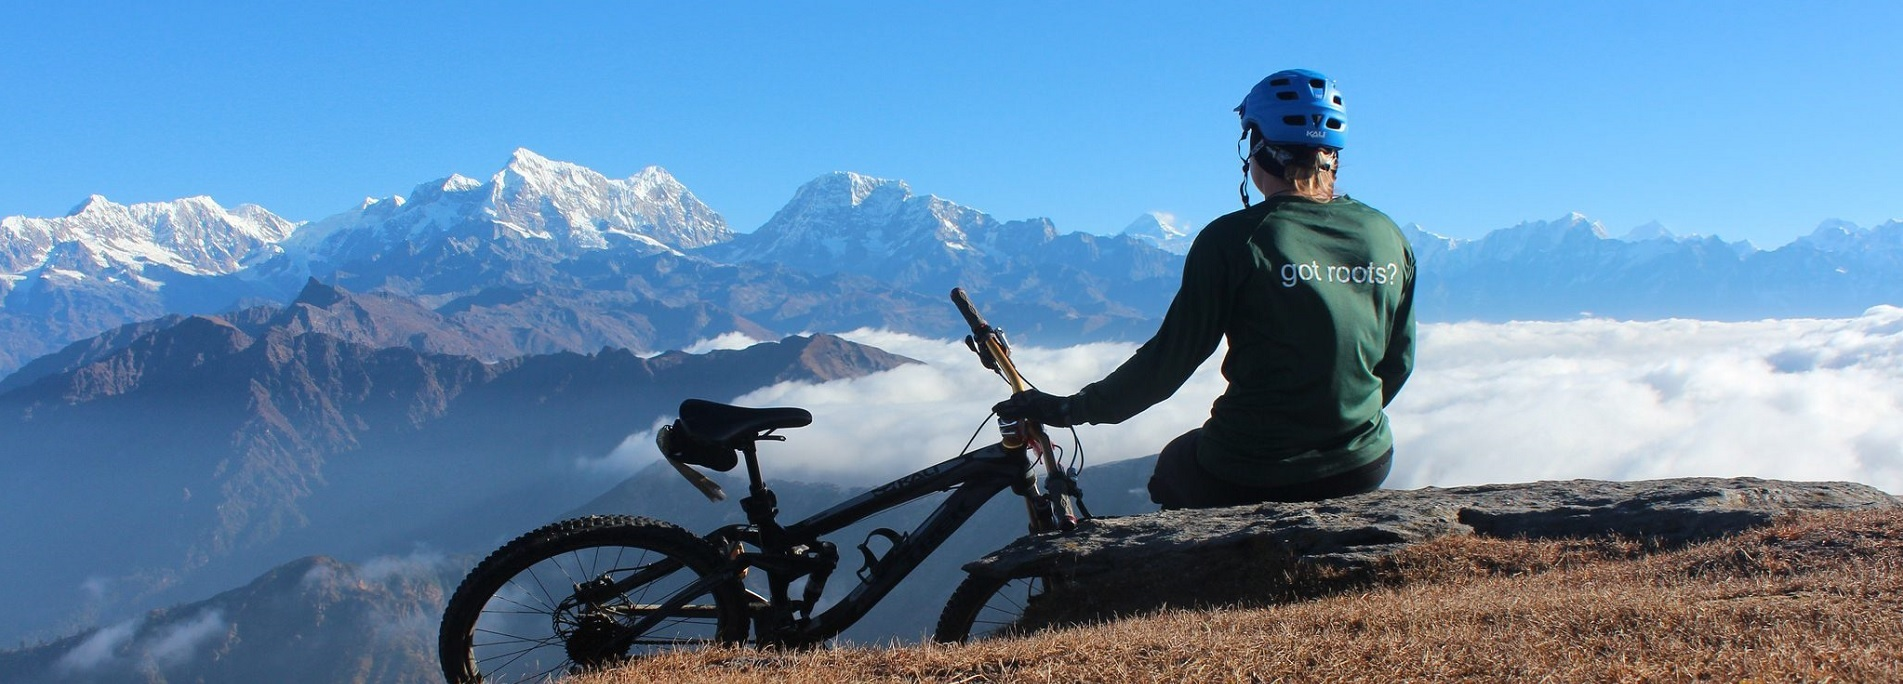 Biking tour in Tibet